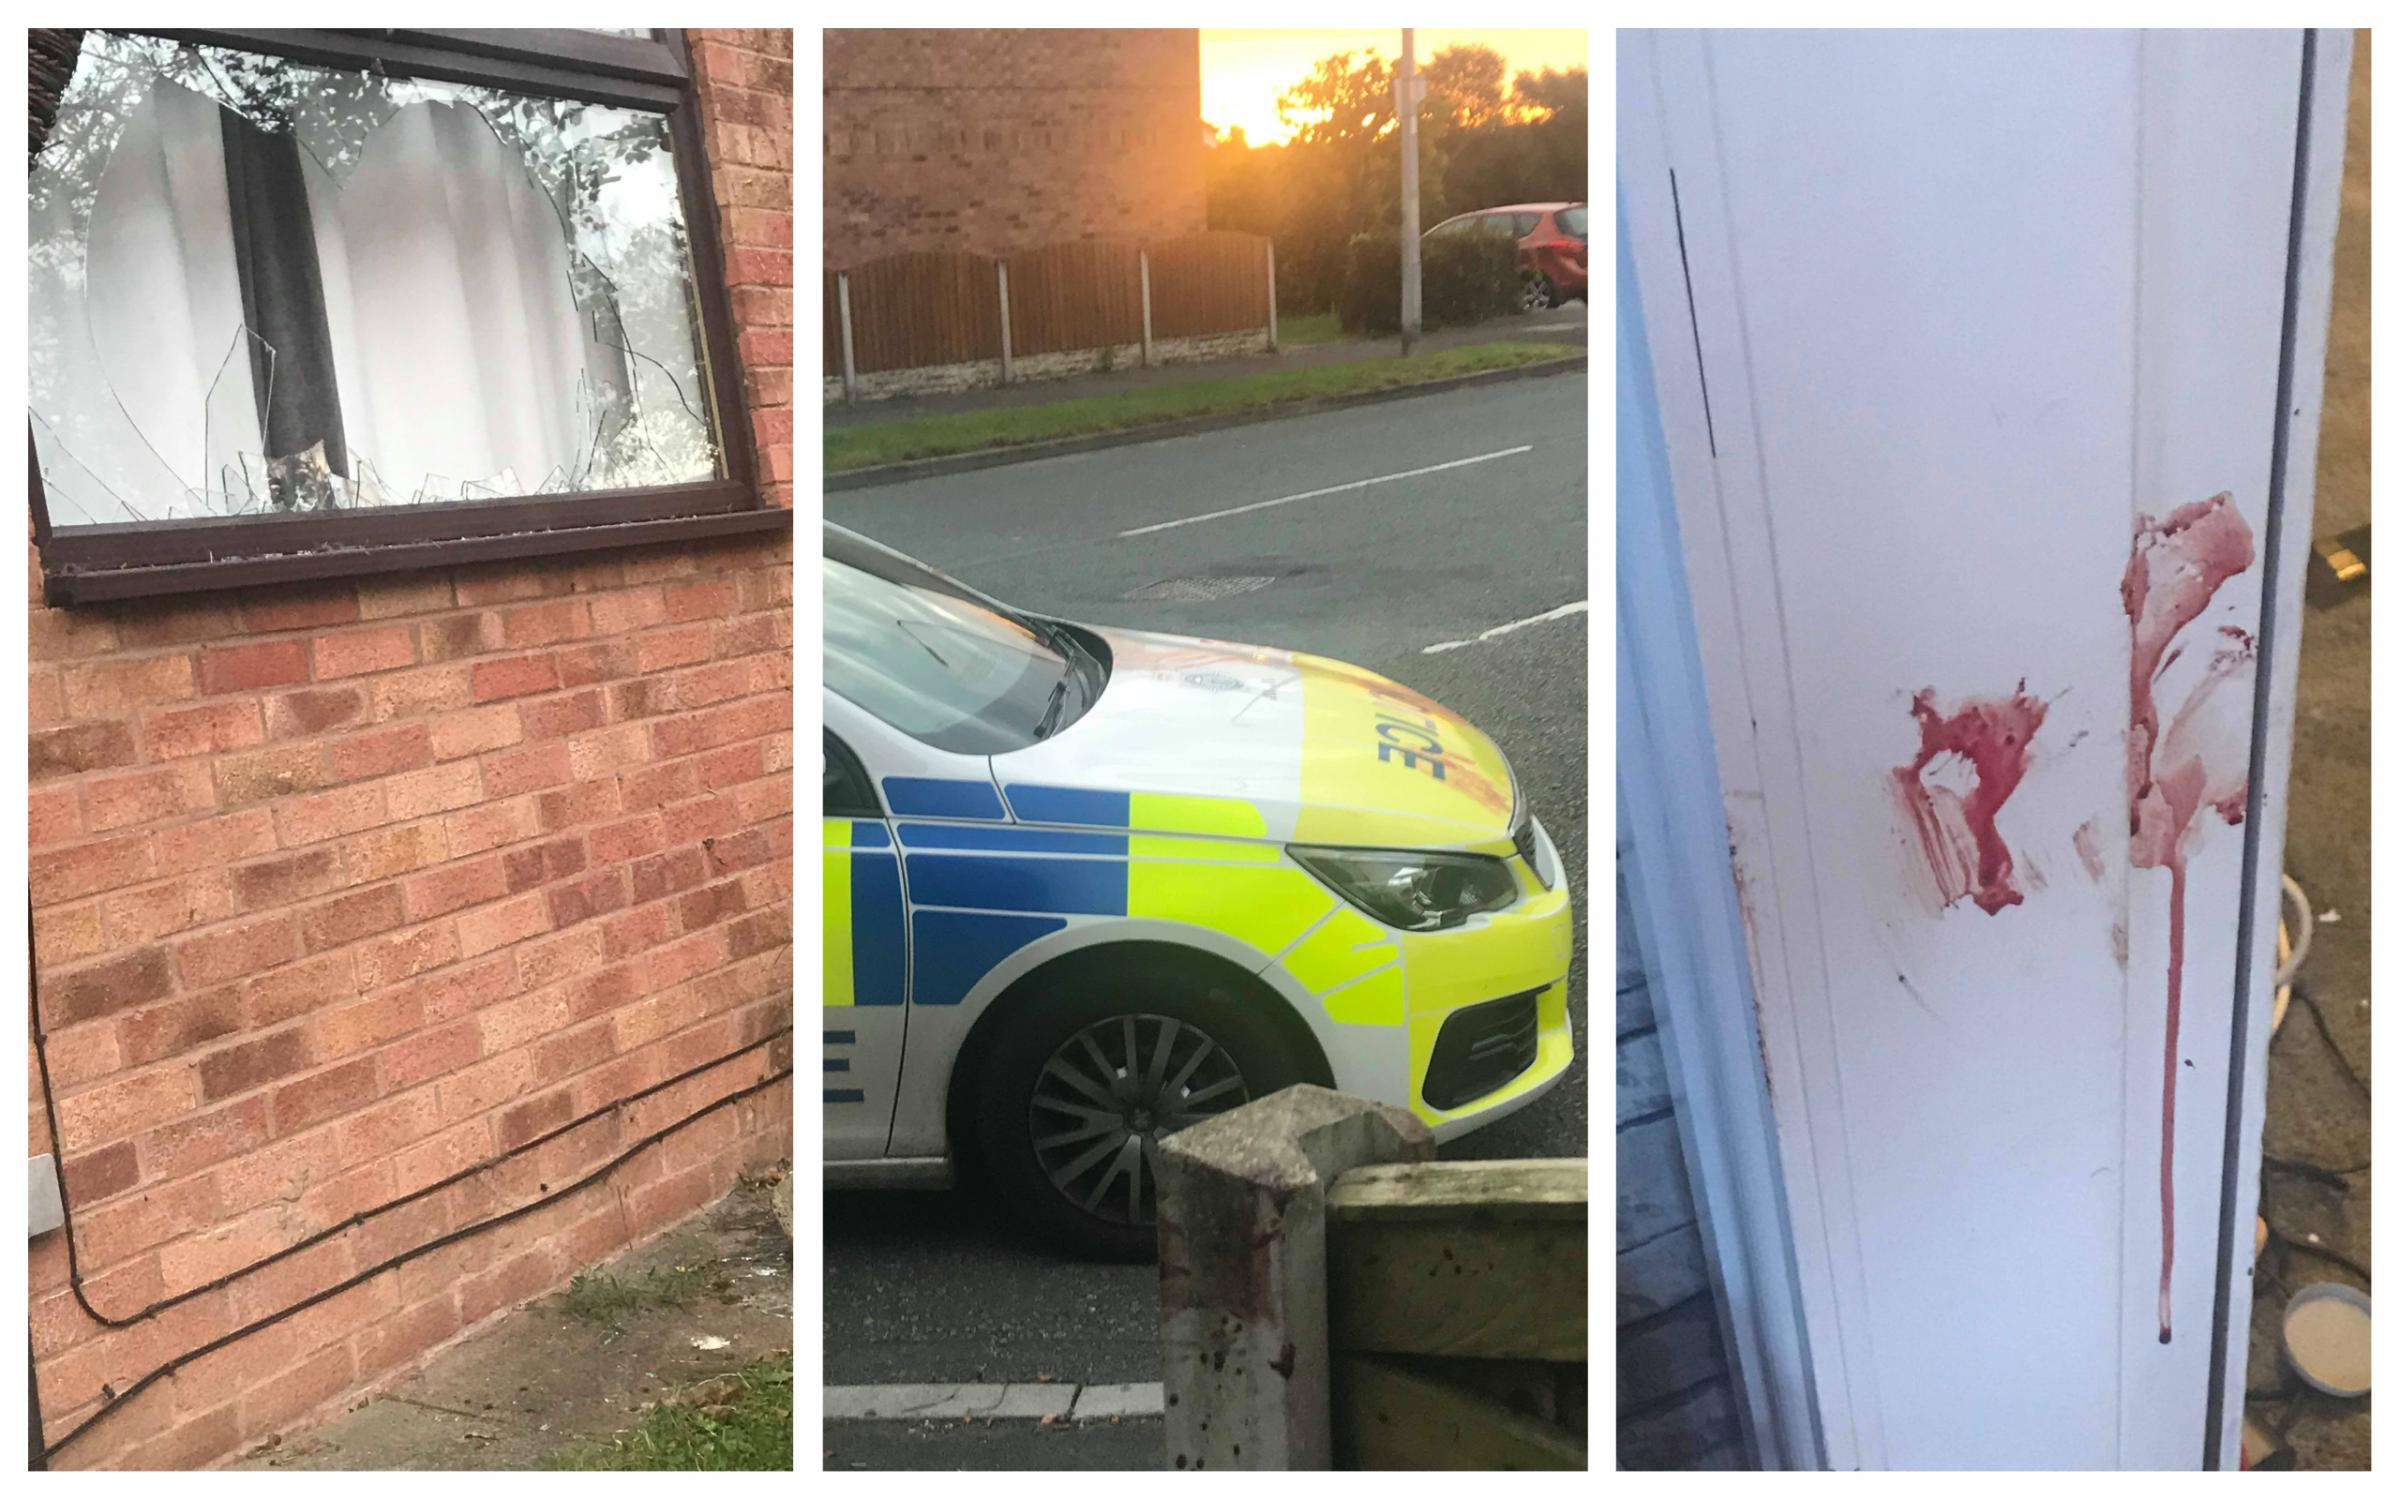 Chester: Half-naked man crashed through window while schoolgirl, 7, was watching TV